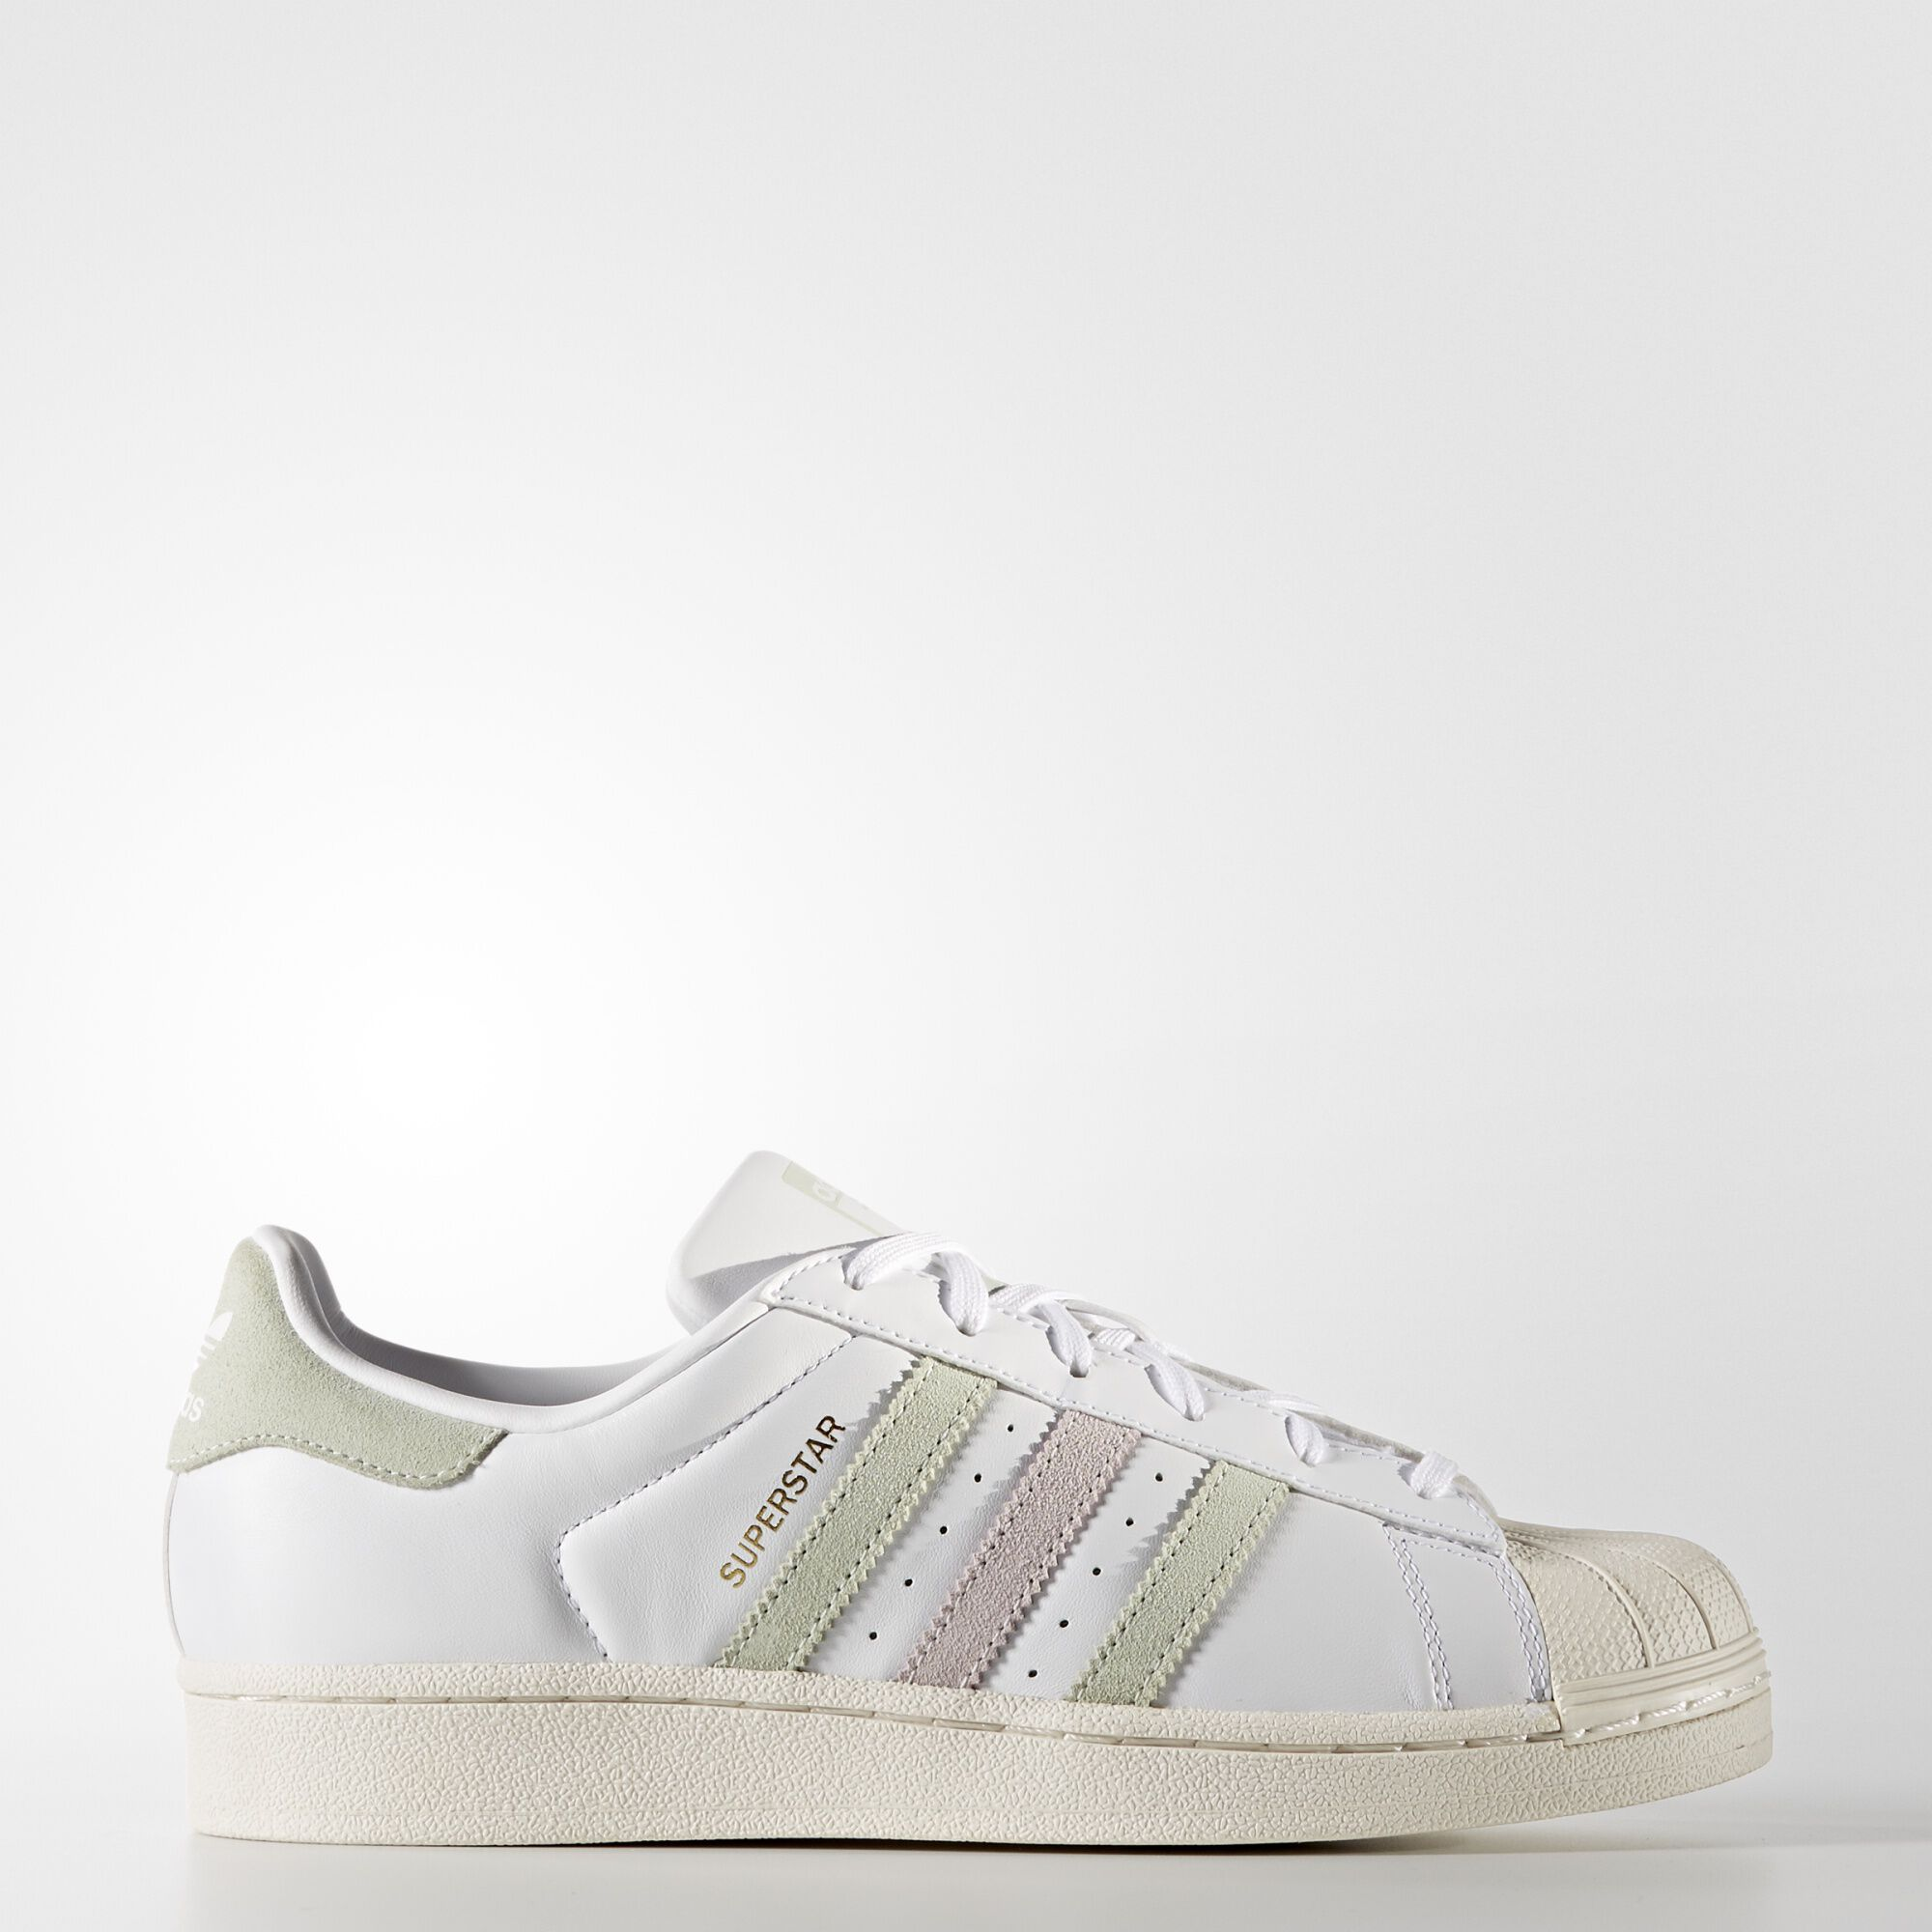 adidas Superstar 80s DLX White & Other Stories